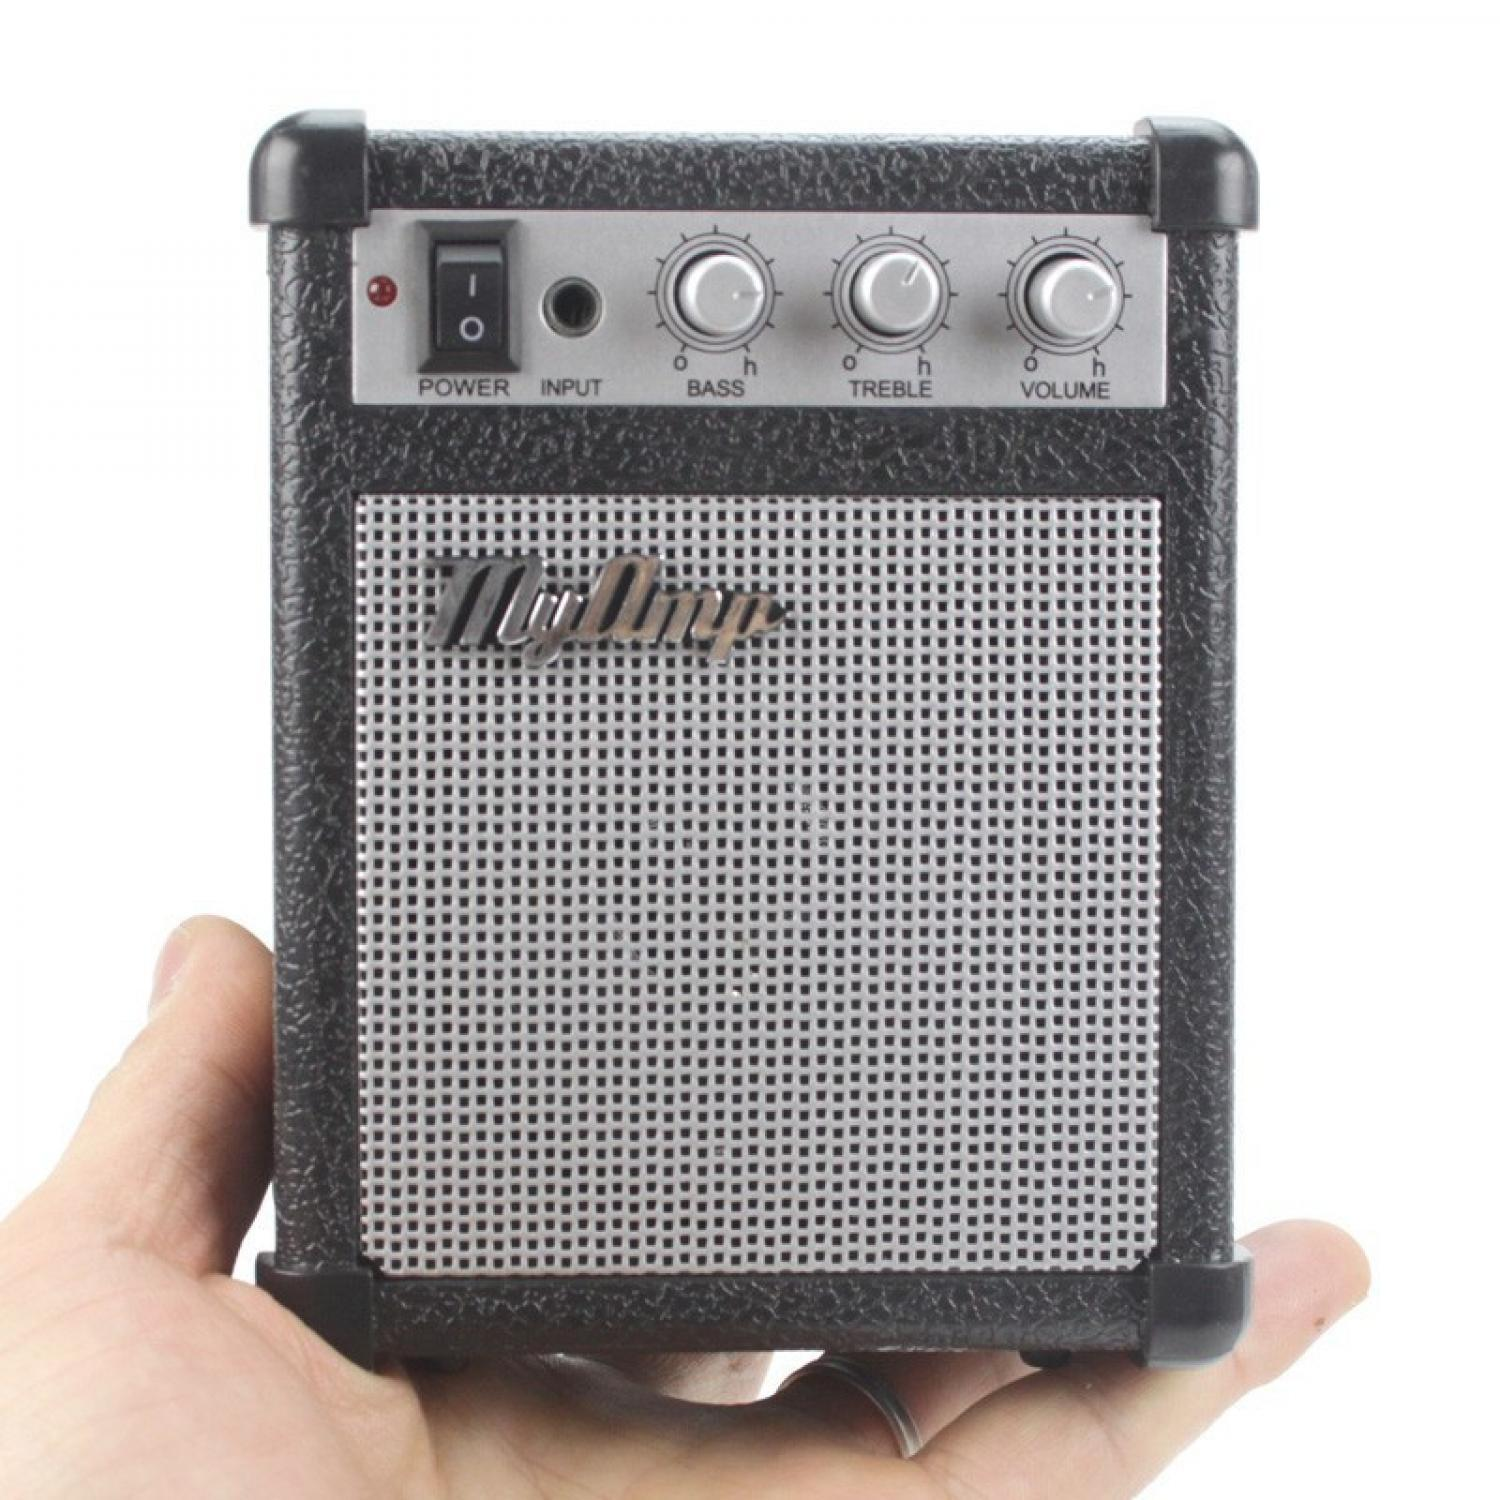 Best Seller!!! MyAmp Classic Amplifier Portable Speaker Murah Terbaik